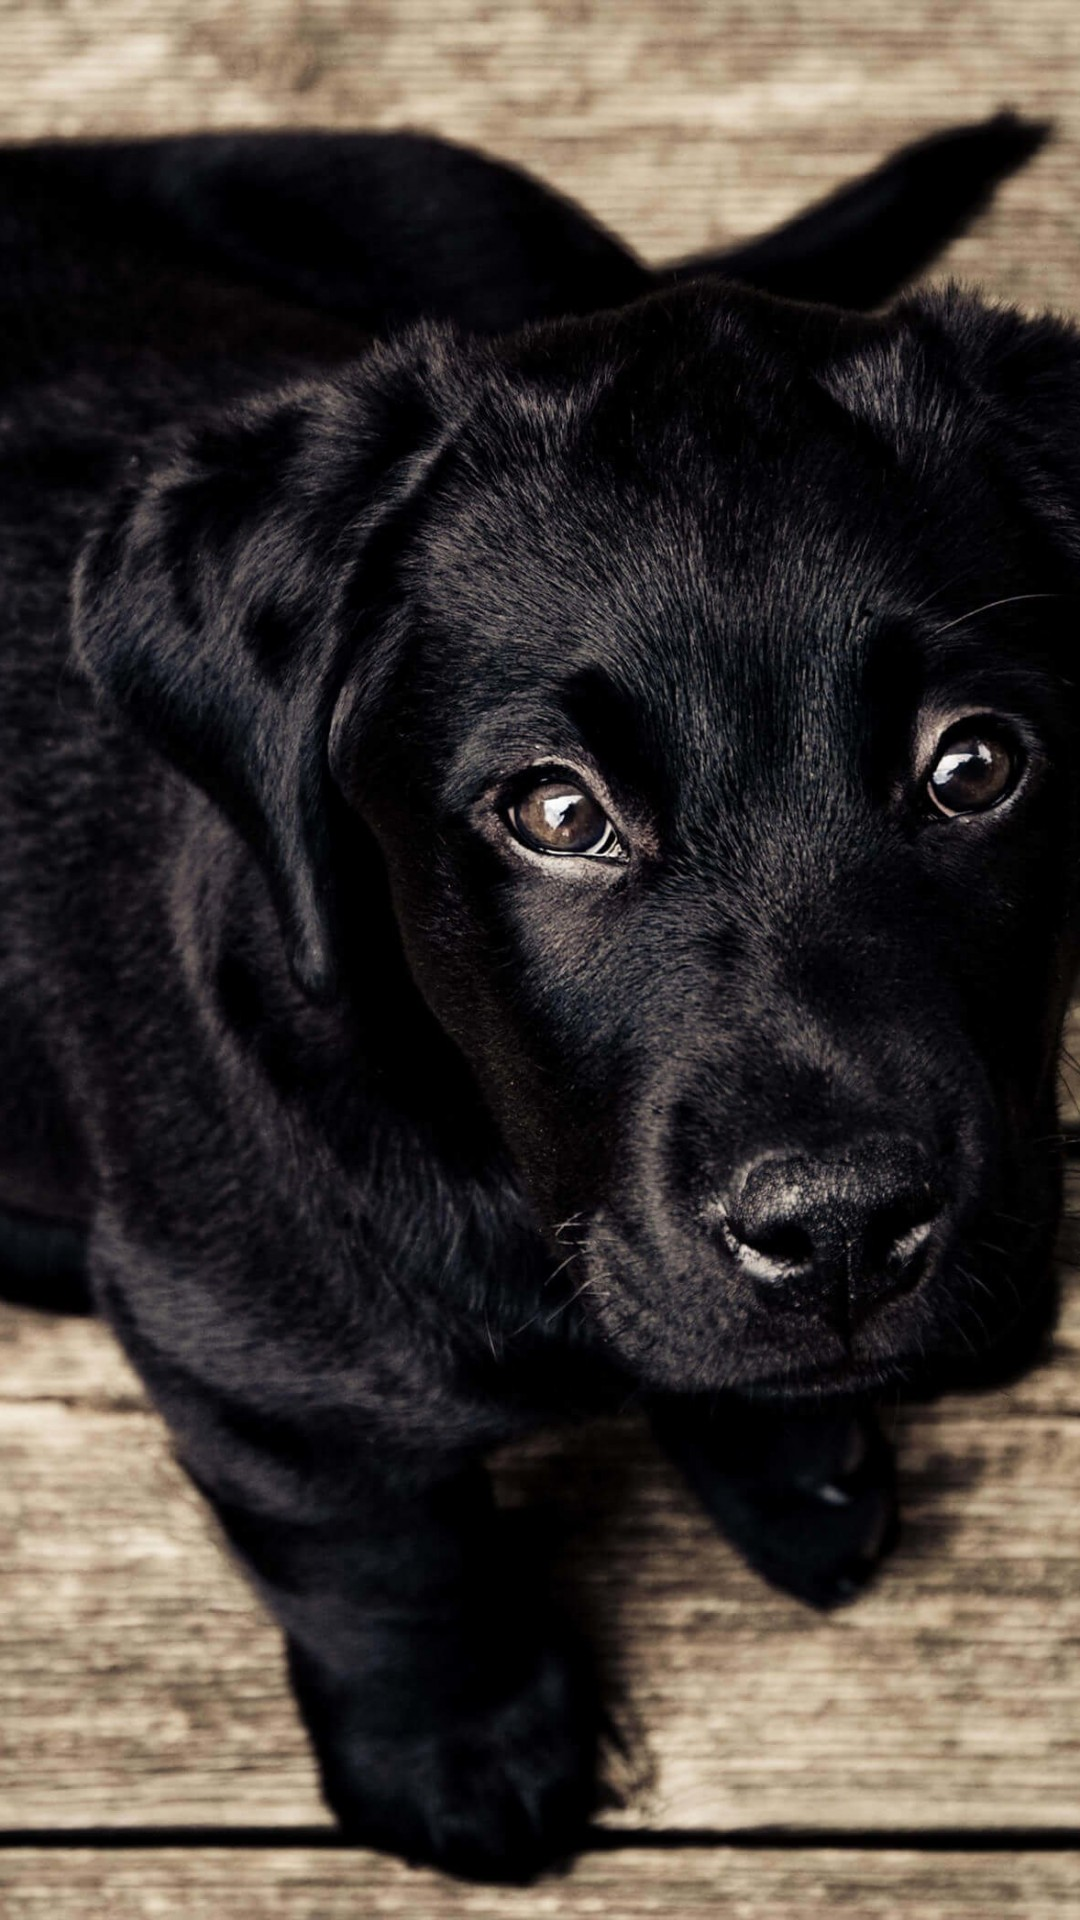 Black Lab Puppy Wallpaper for Motorola Moto X